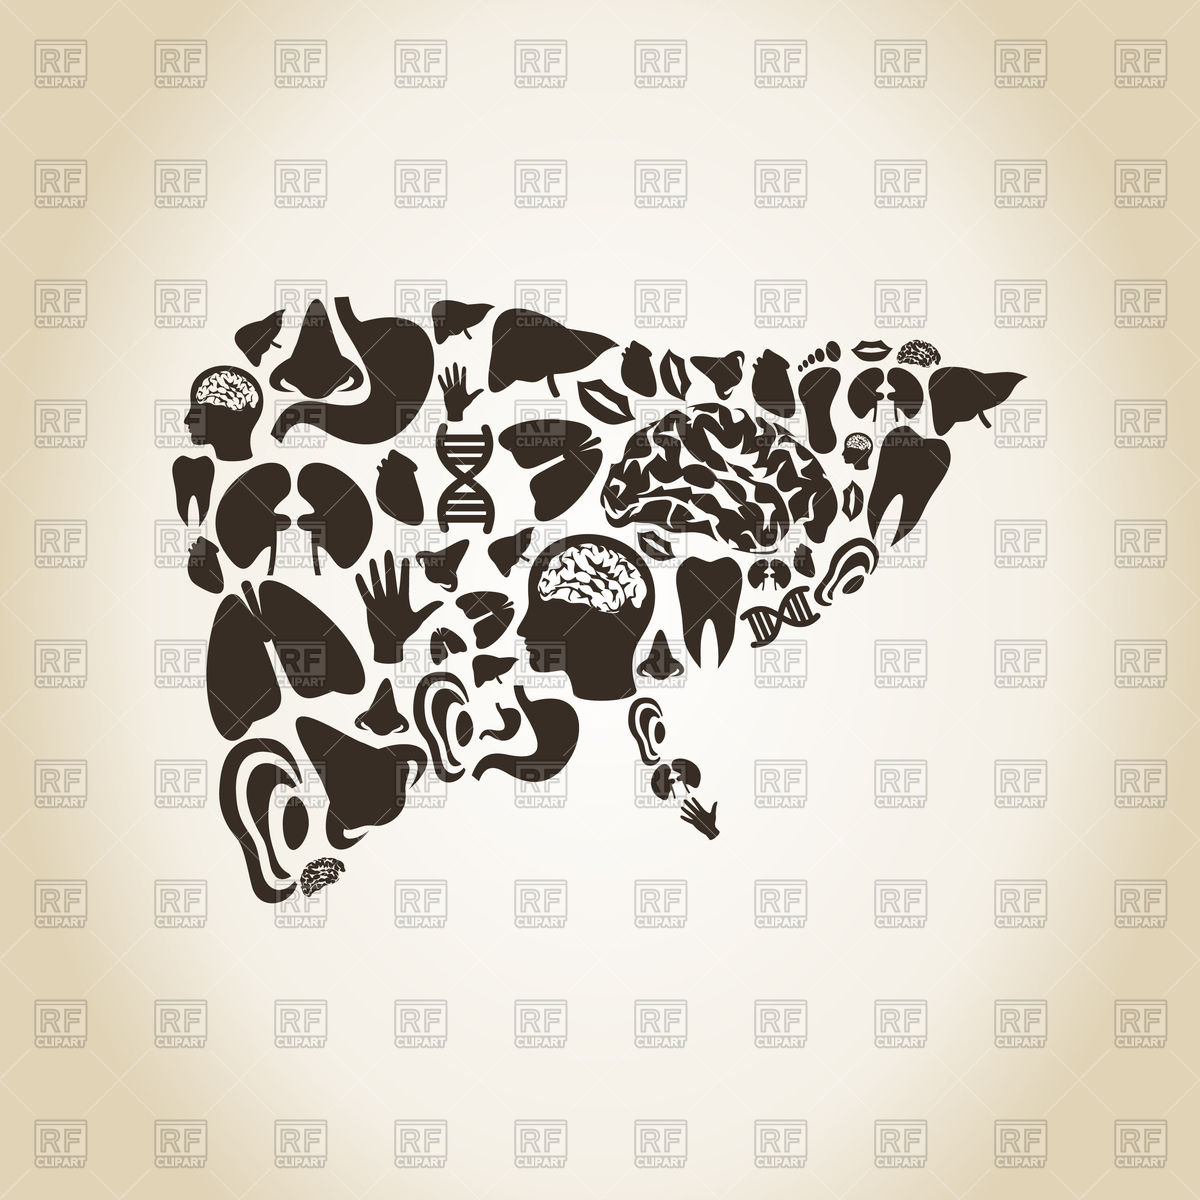 Liver made of body parts Vector Image #78263.